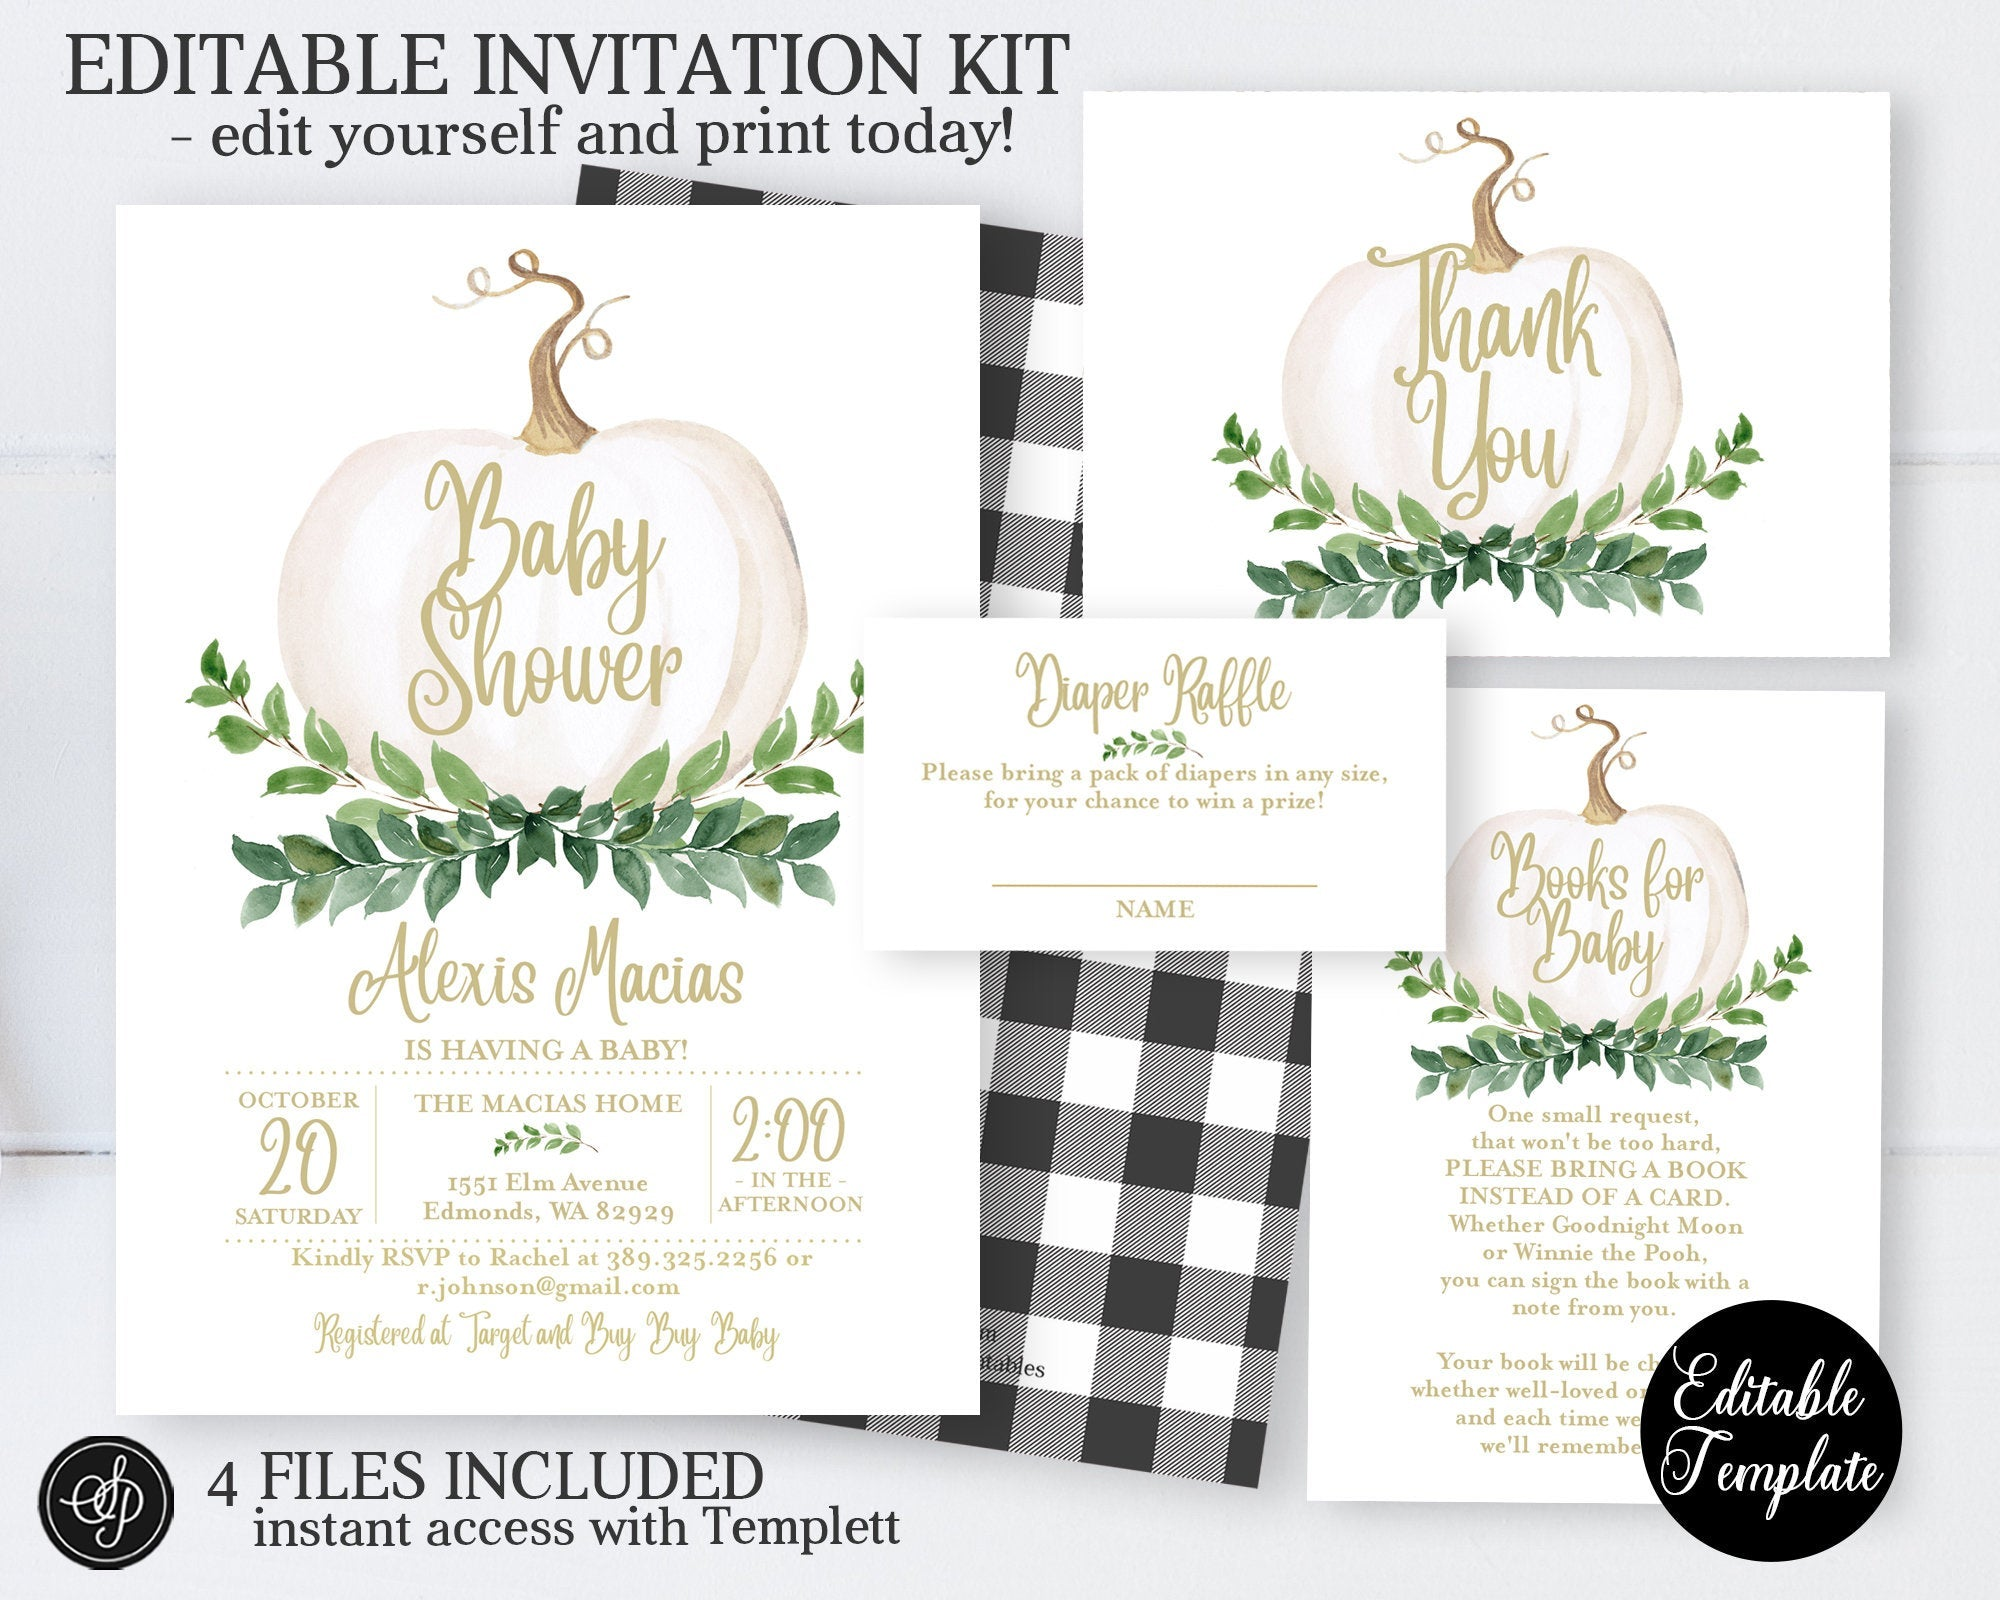 image about Baby Shower Printable Invitations identified as Small Pumpkin Kid Shower Invitation, Gender Impartial Slide Youngster Shower Invite, White Pumpkin, Greenery, Printable Invitation, SP0056A